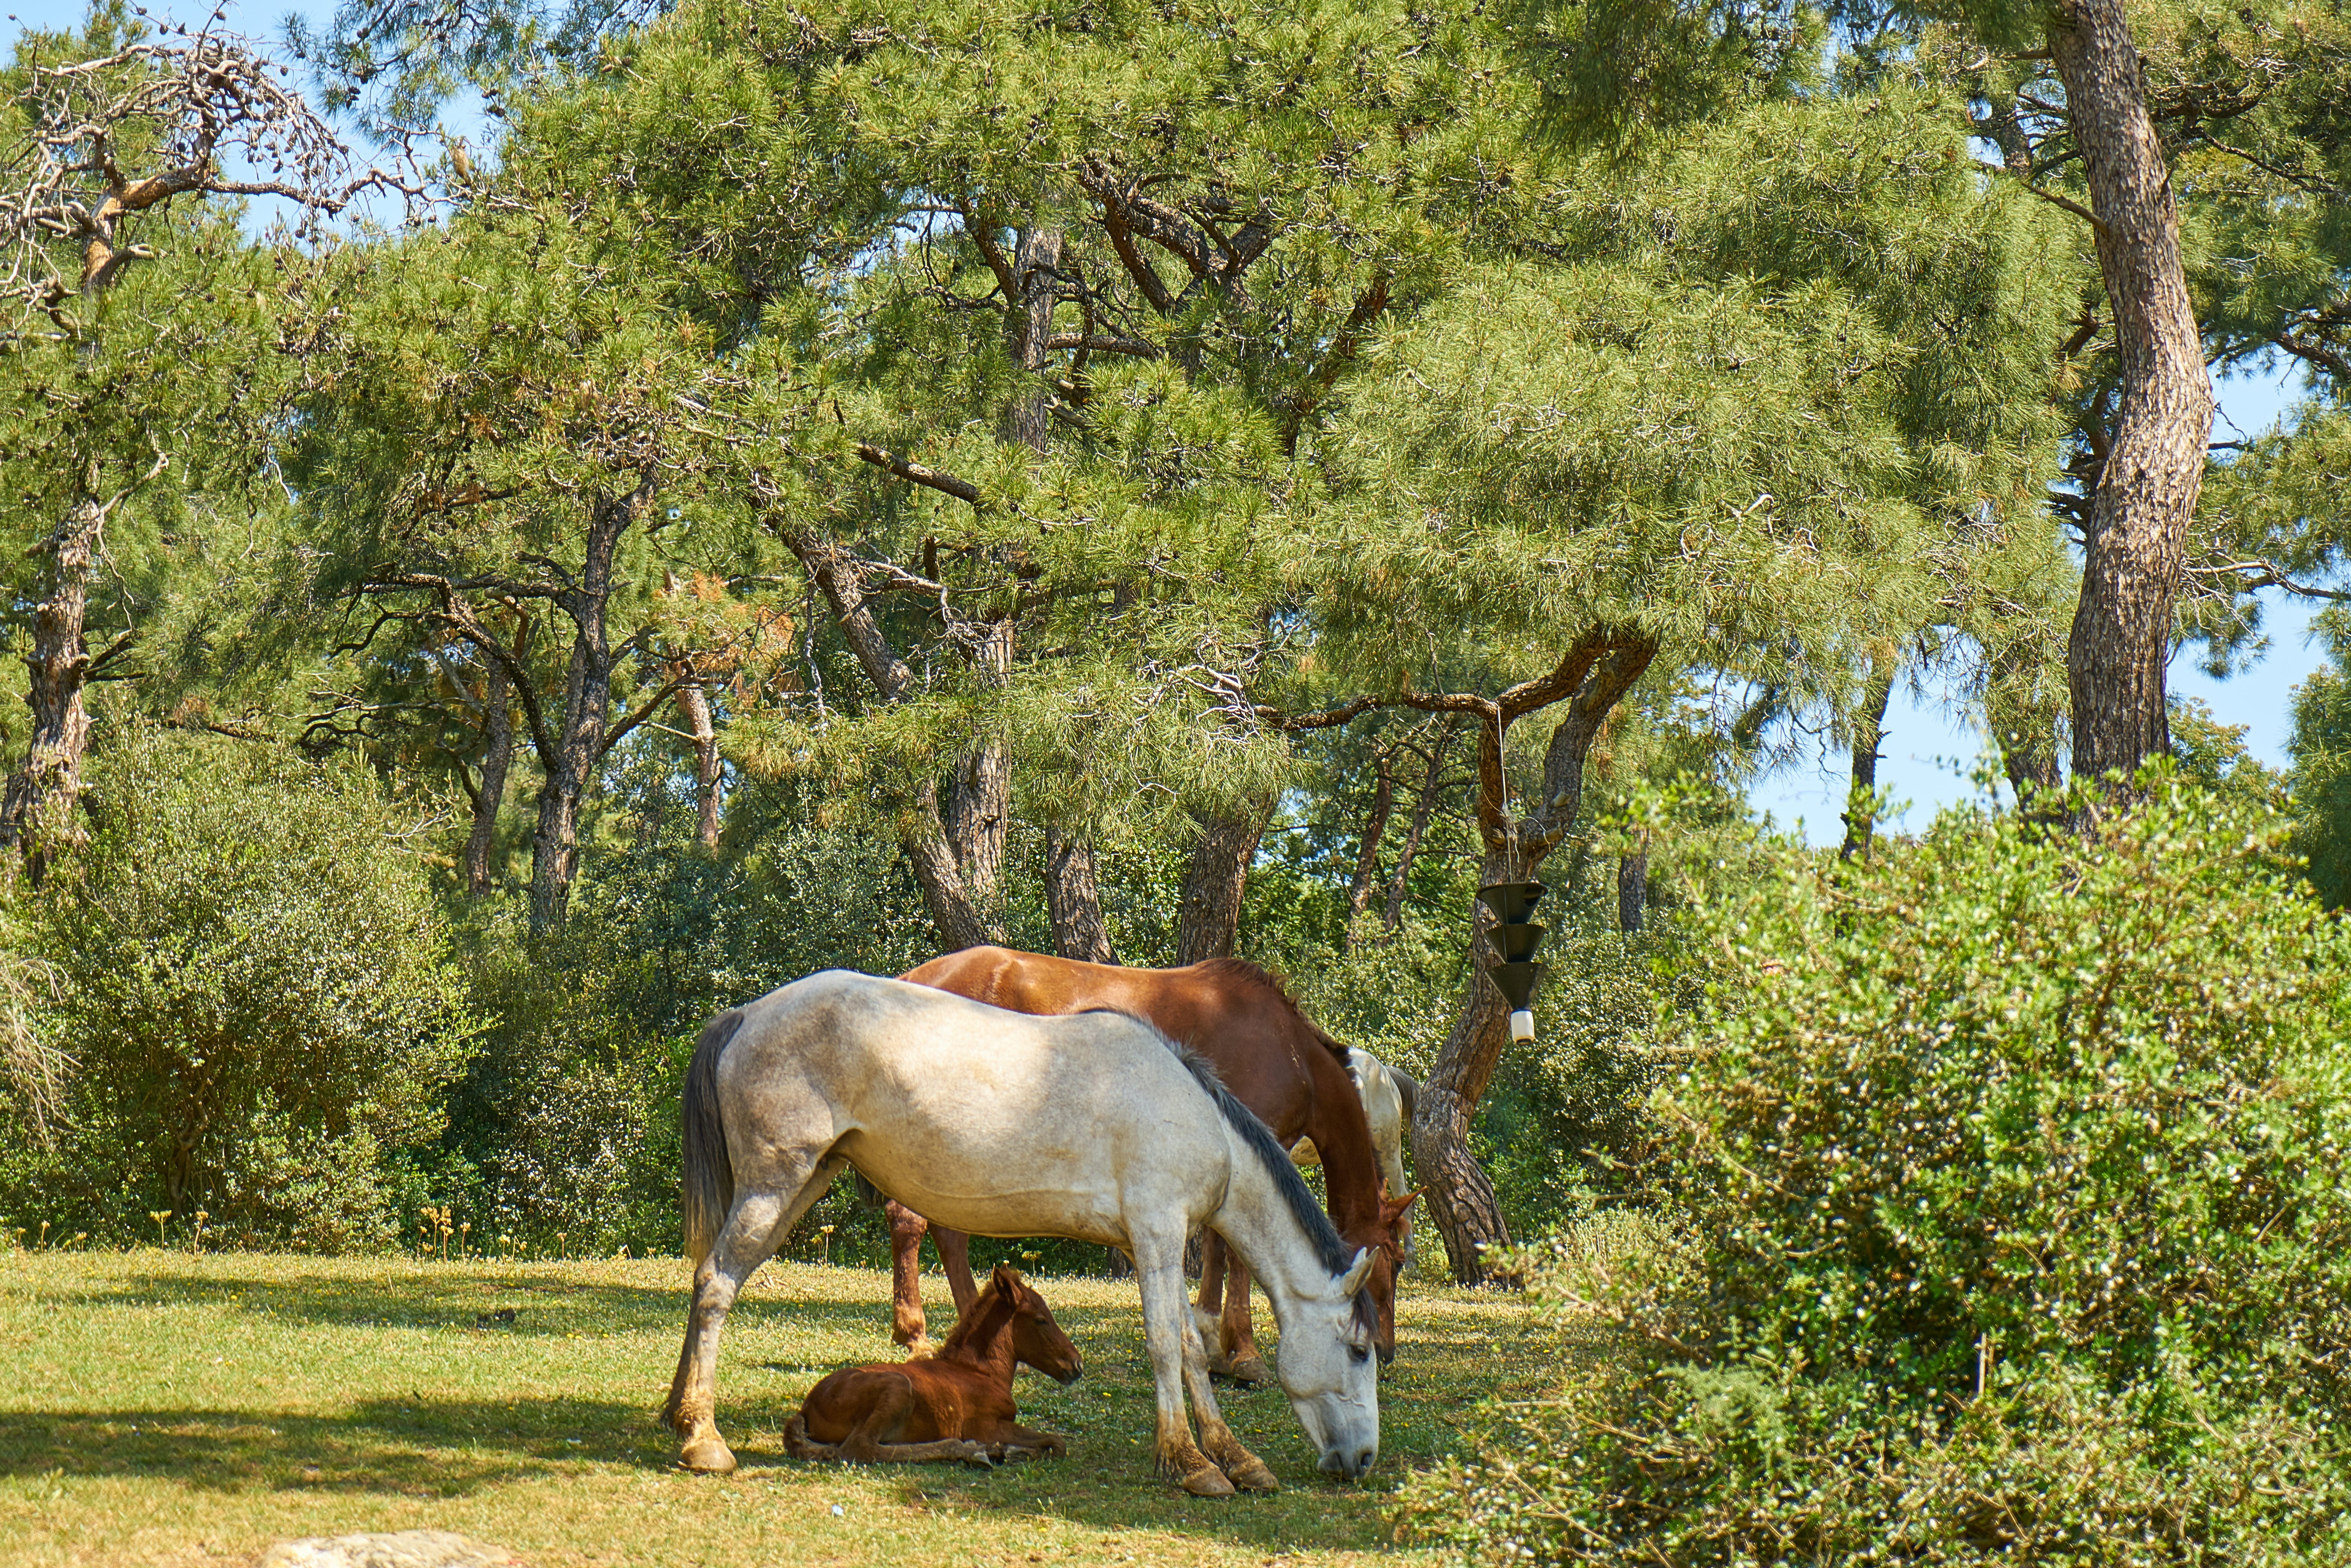 White and Brown Horses Eating Grass